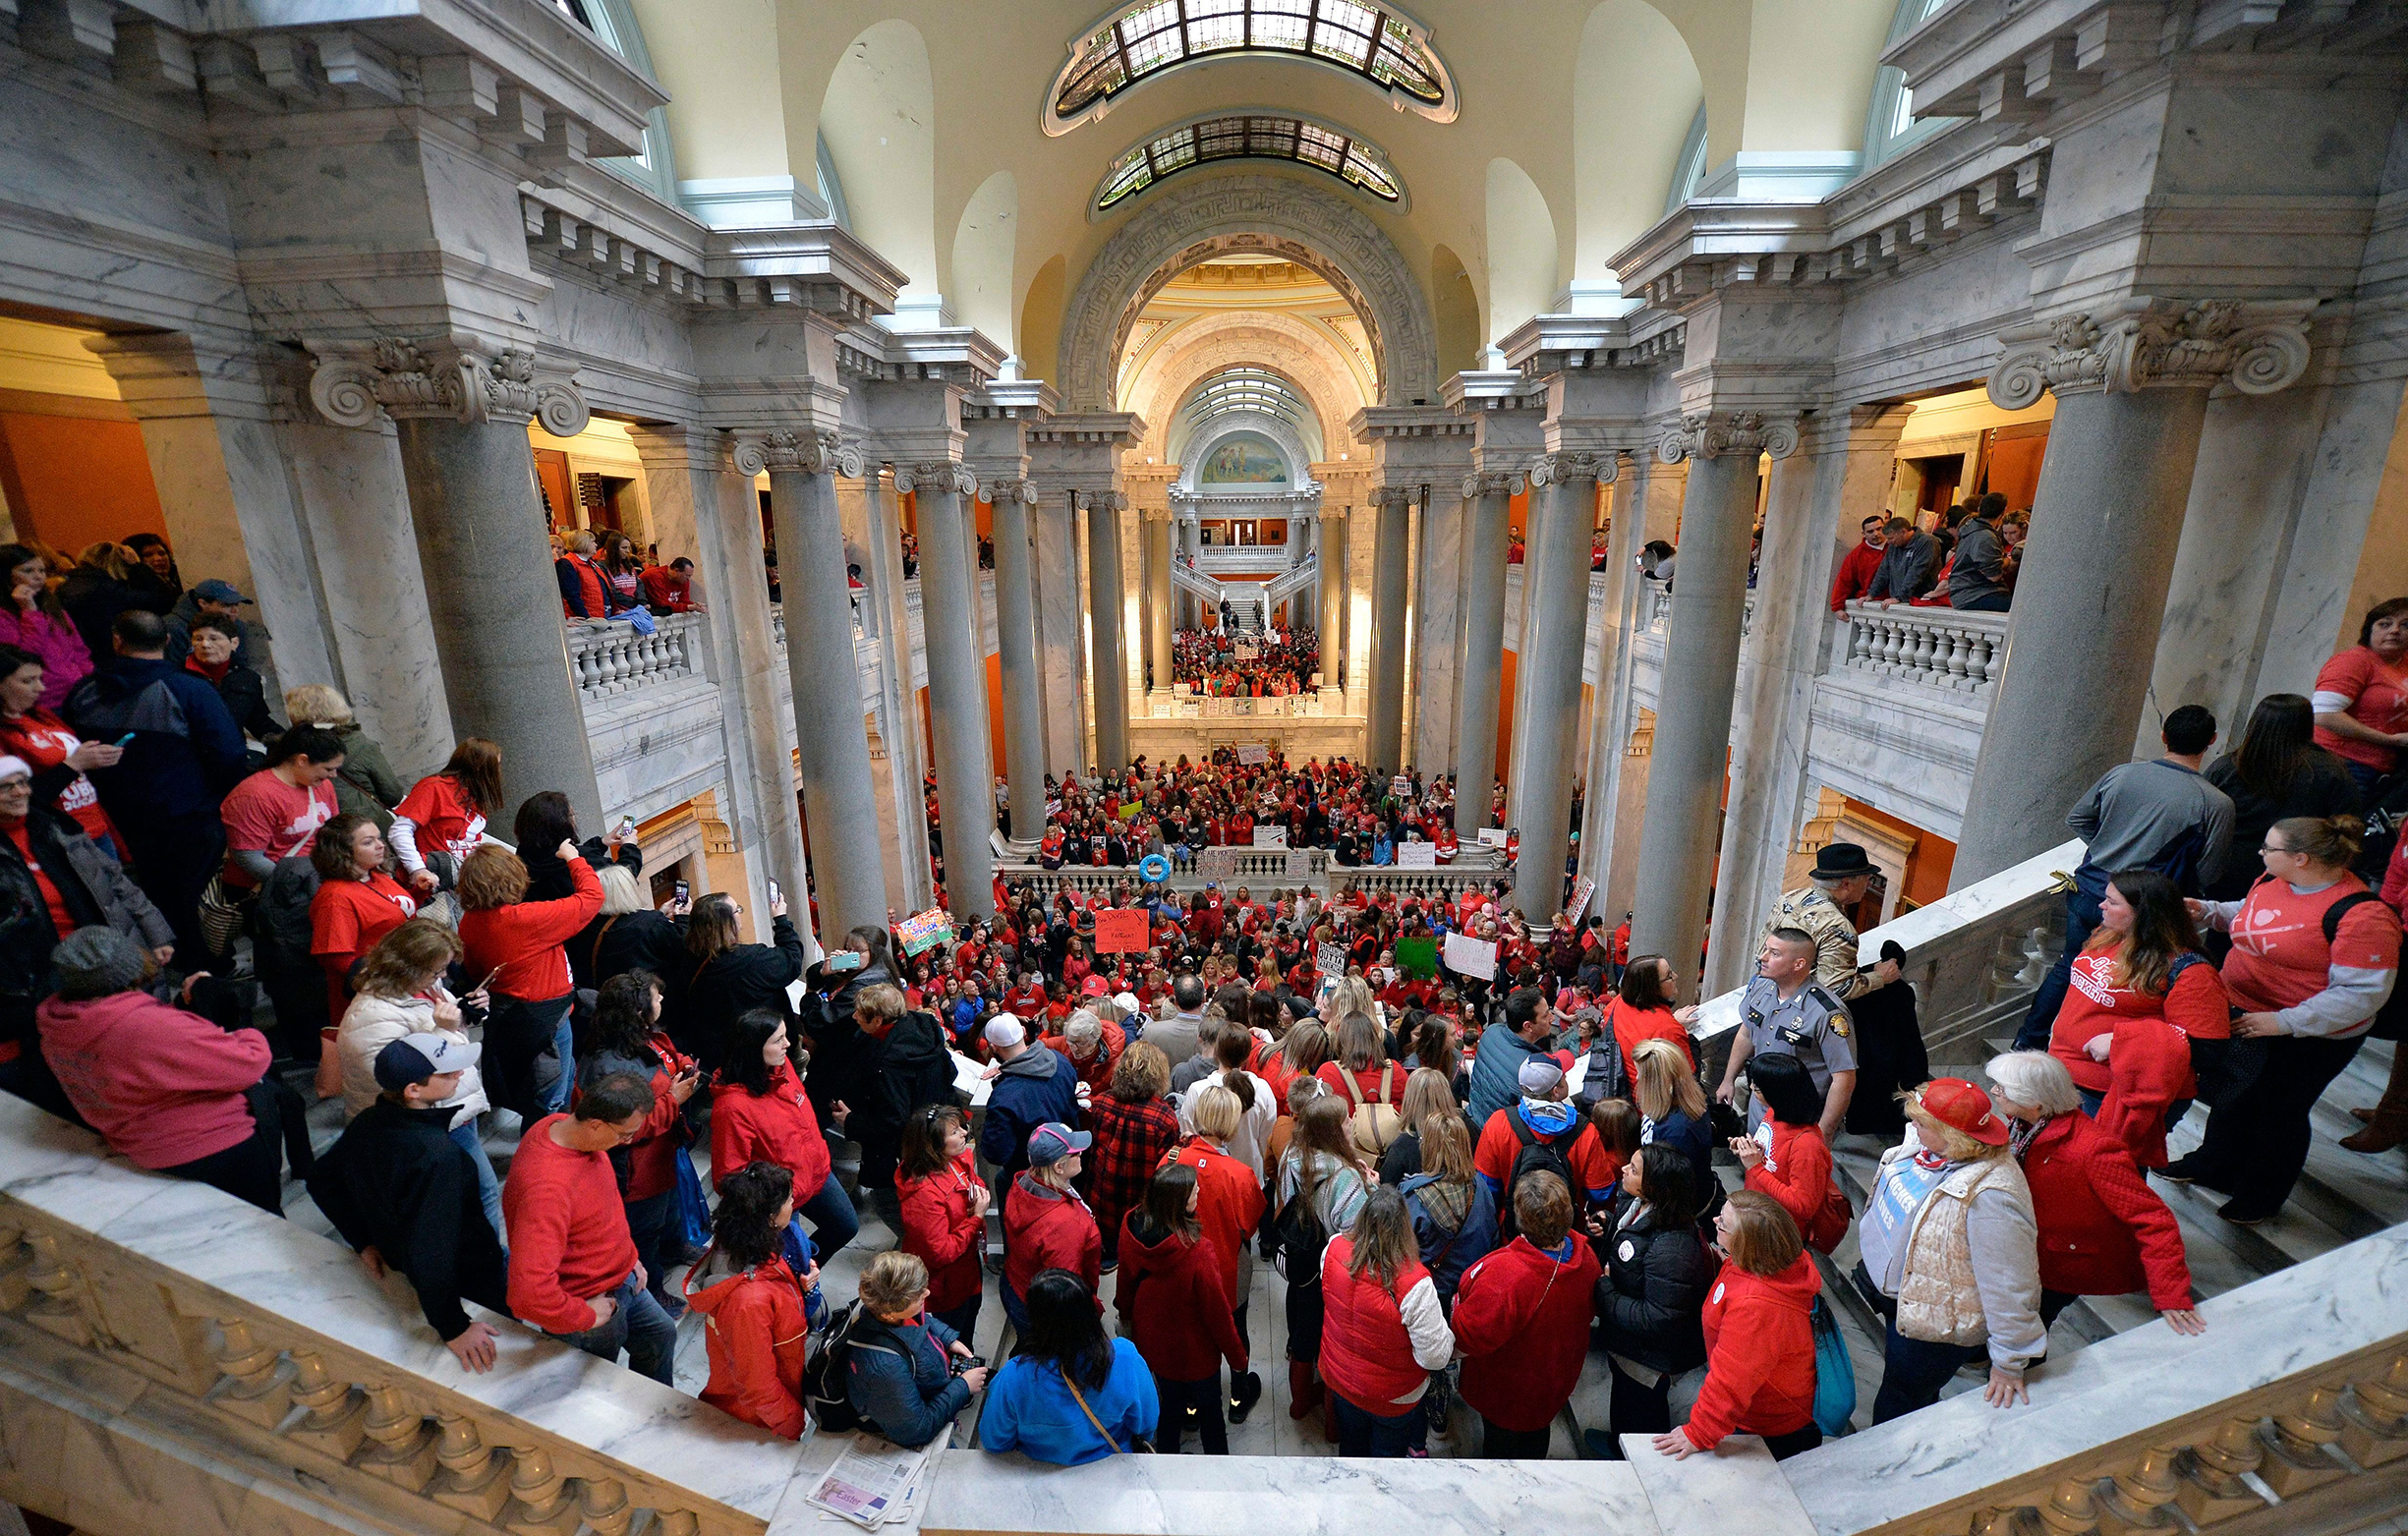 Kentucky teachers fill the state capitol on April 2 to protest pension changes and budget cutThousands of teachers from across Kentucky fill the state Capitol to rally for increased funding and to protest last minute changes to their state funded pension system, in Frankfort, Ky. Thousands filled the state Capitol to protest teacher pension changes, and schools were closed statewide in Oklahoma as thousands more educators rallied for increased education funding                     Teacher Protests, Frankfort, USA - 02 Apr 2018